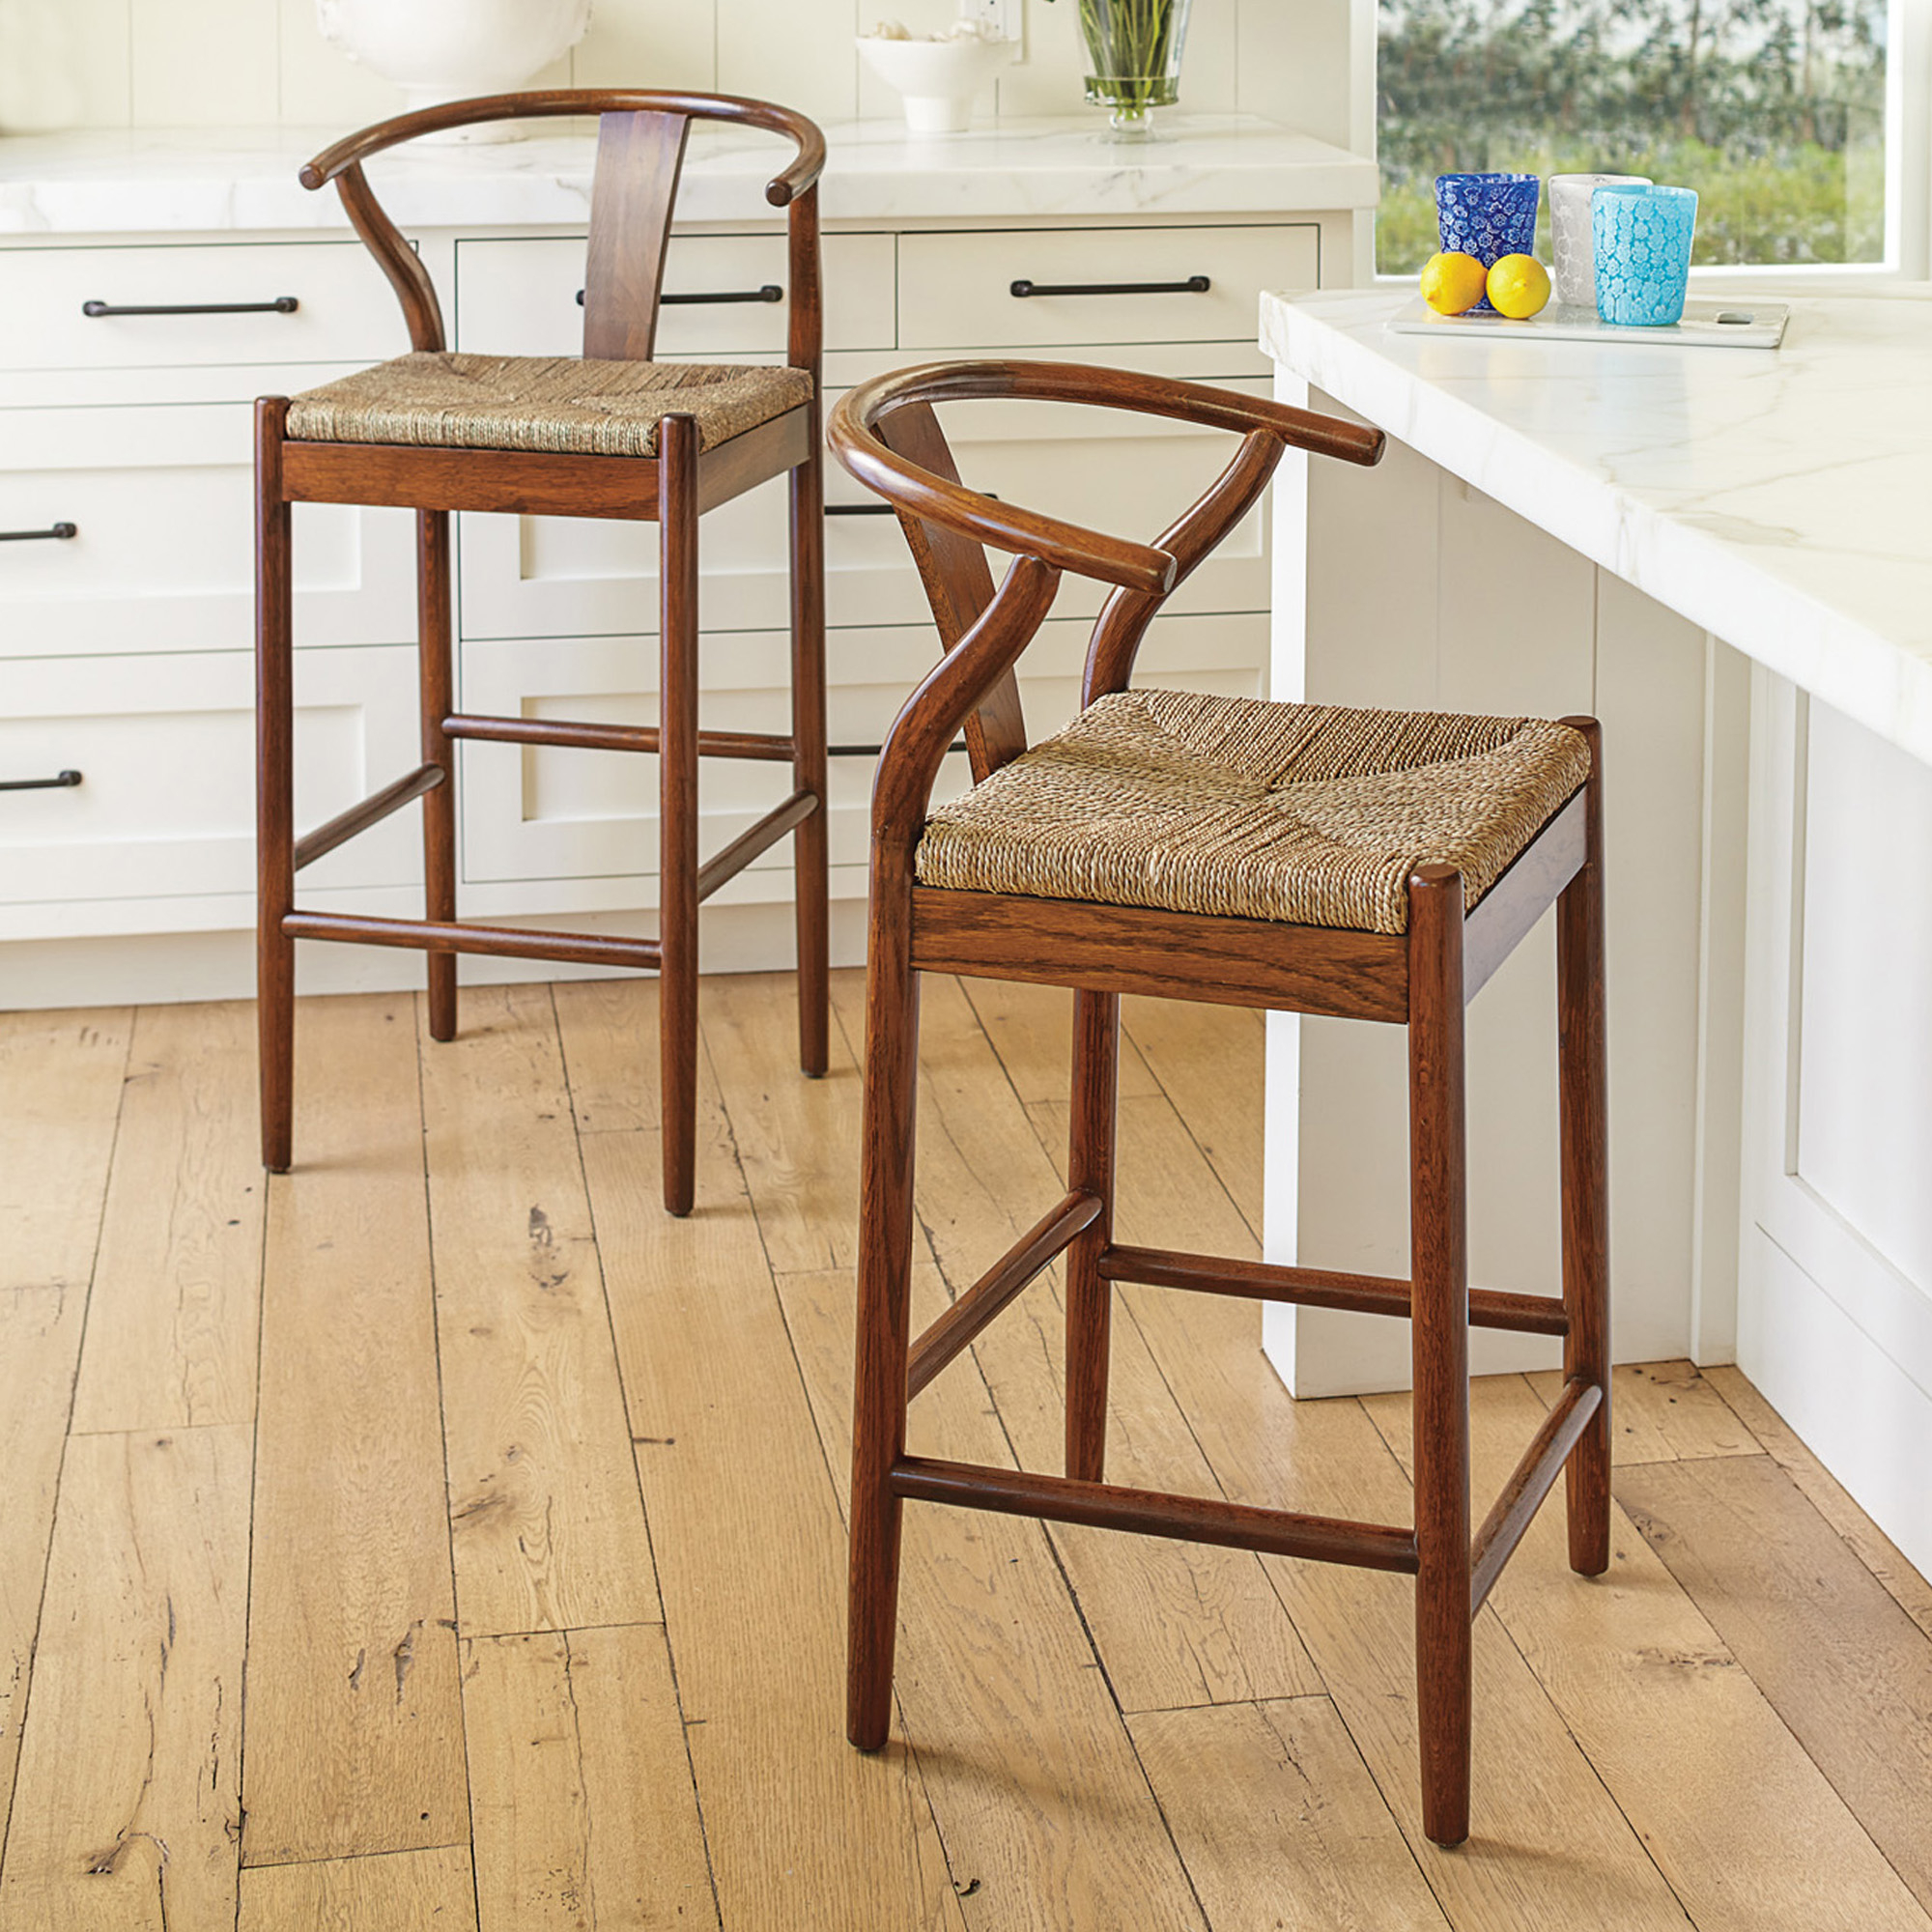 Horseshoe Bar & Counter Stools, Brown